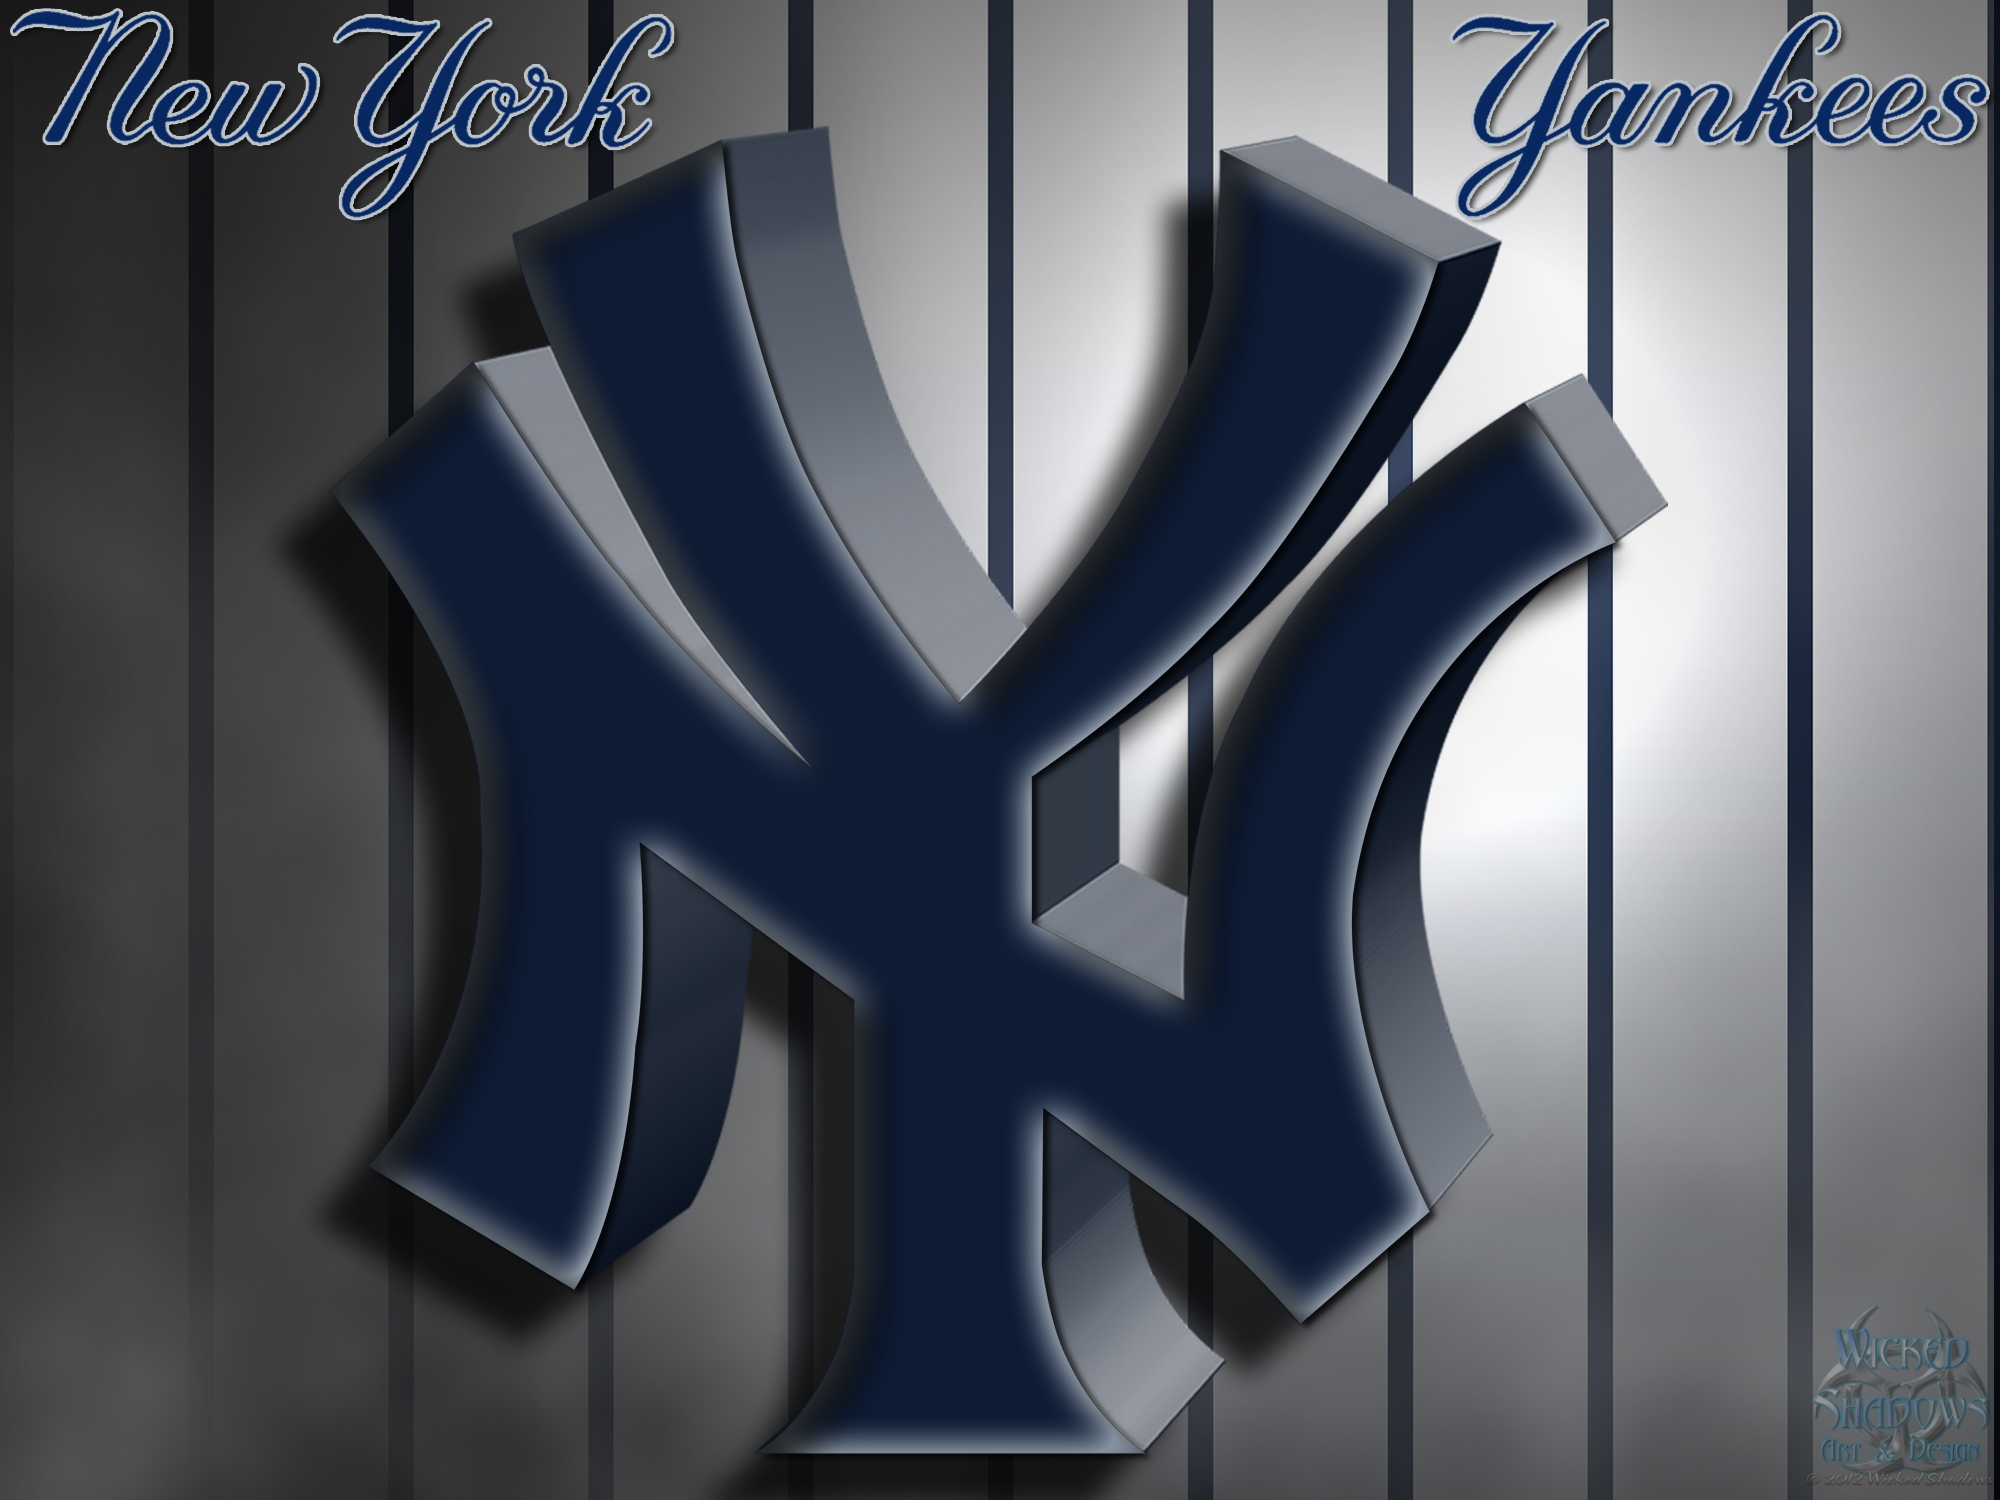 Yankees Logo Wallpaper Cake Ideas and Designs 2000x1500